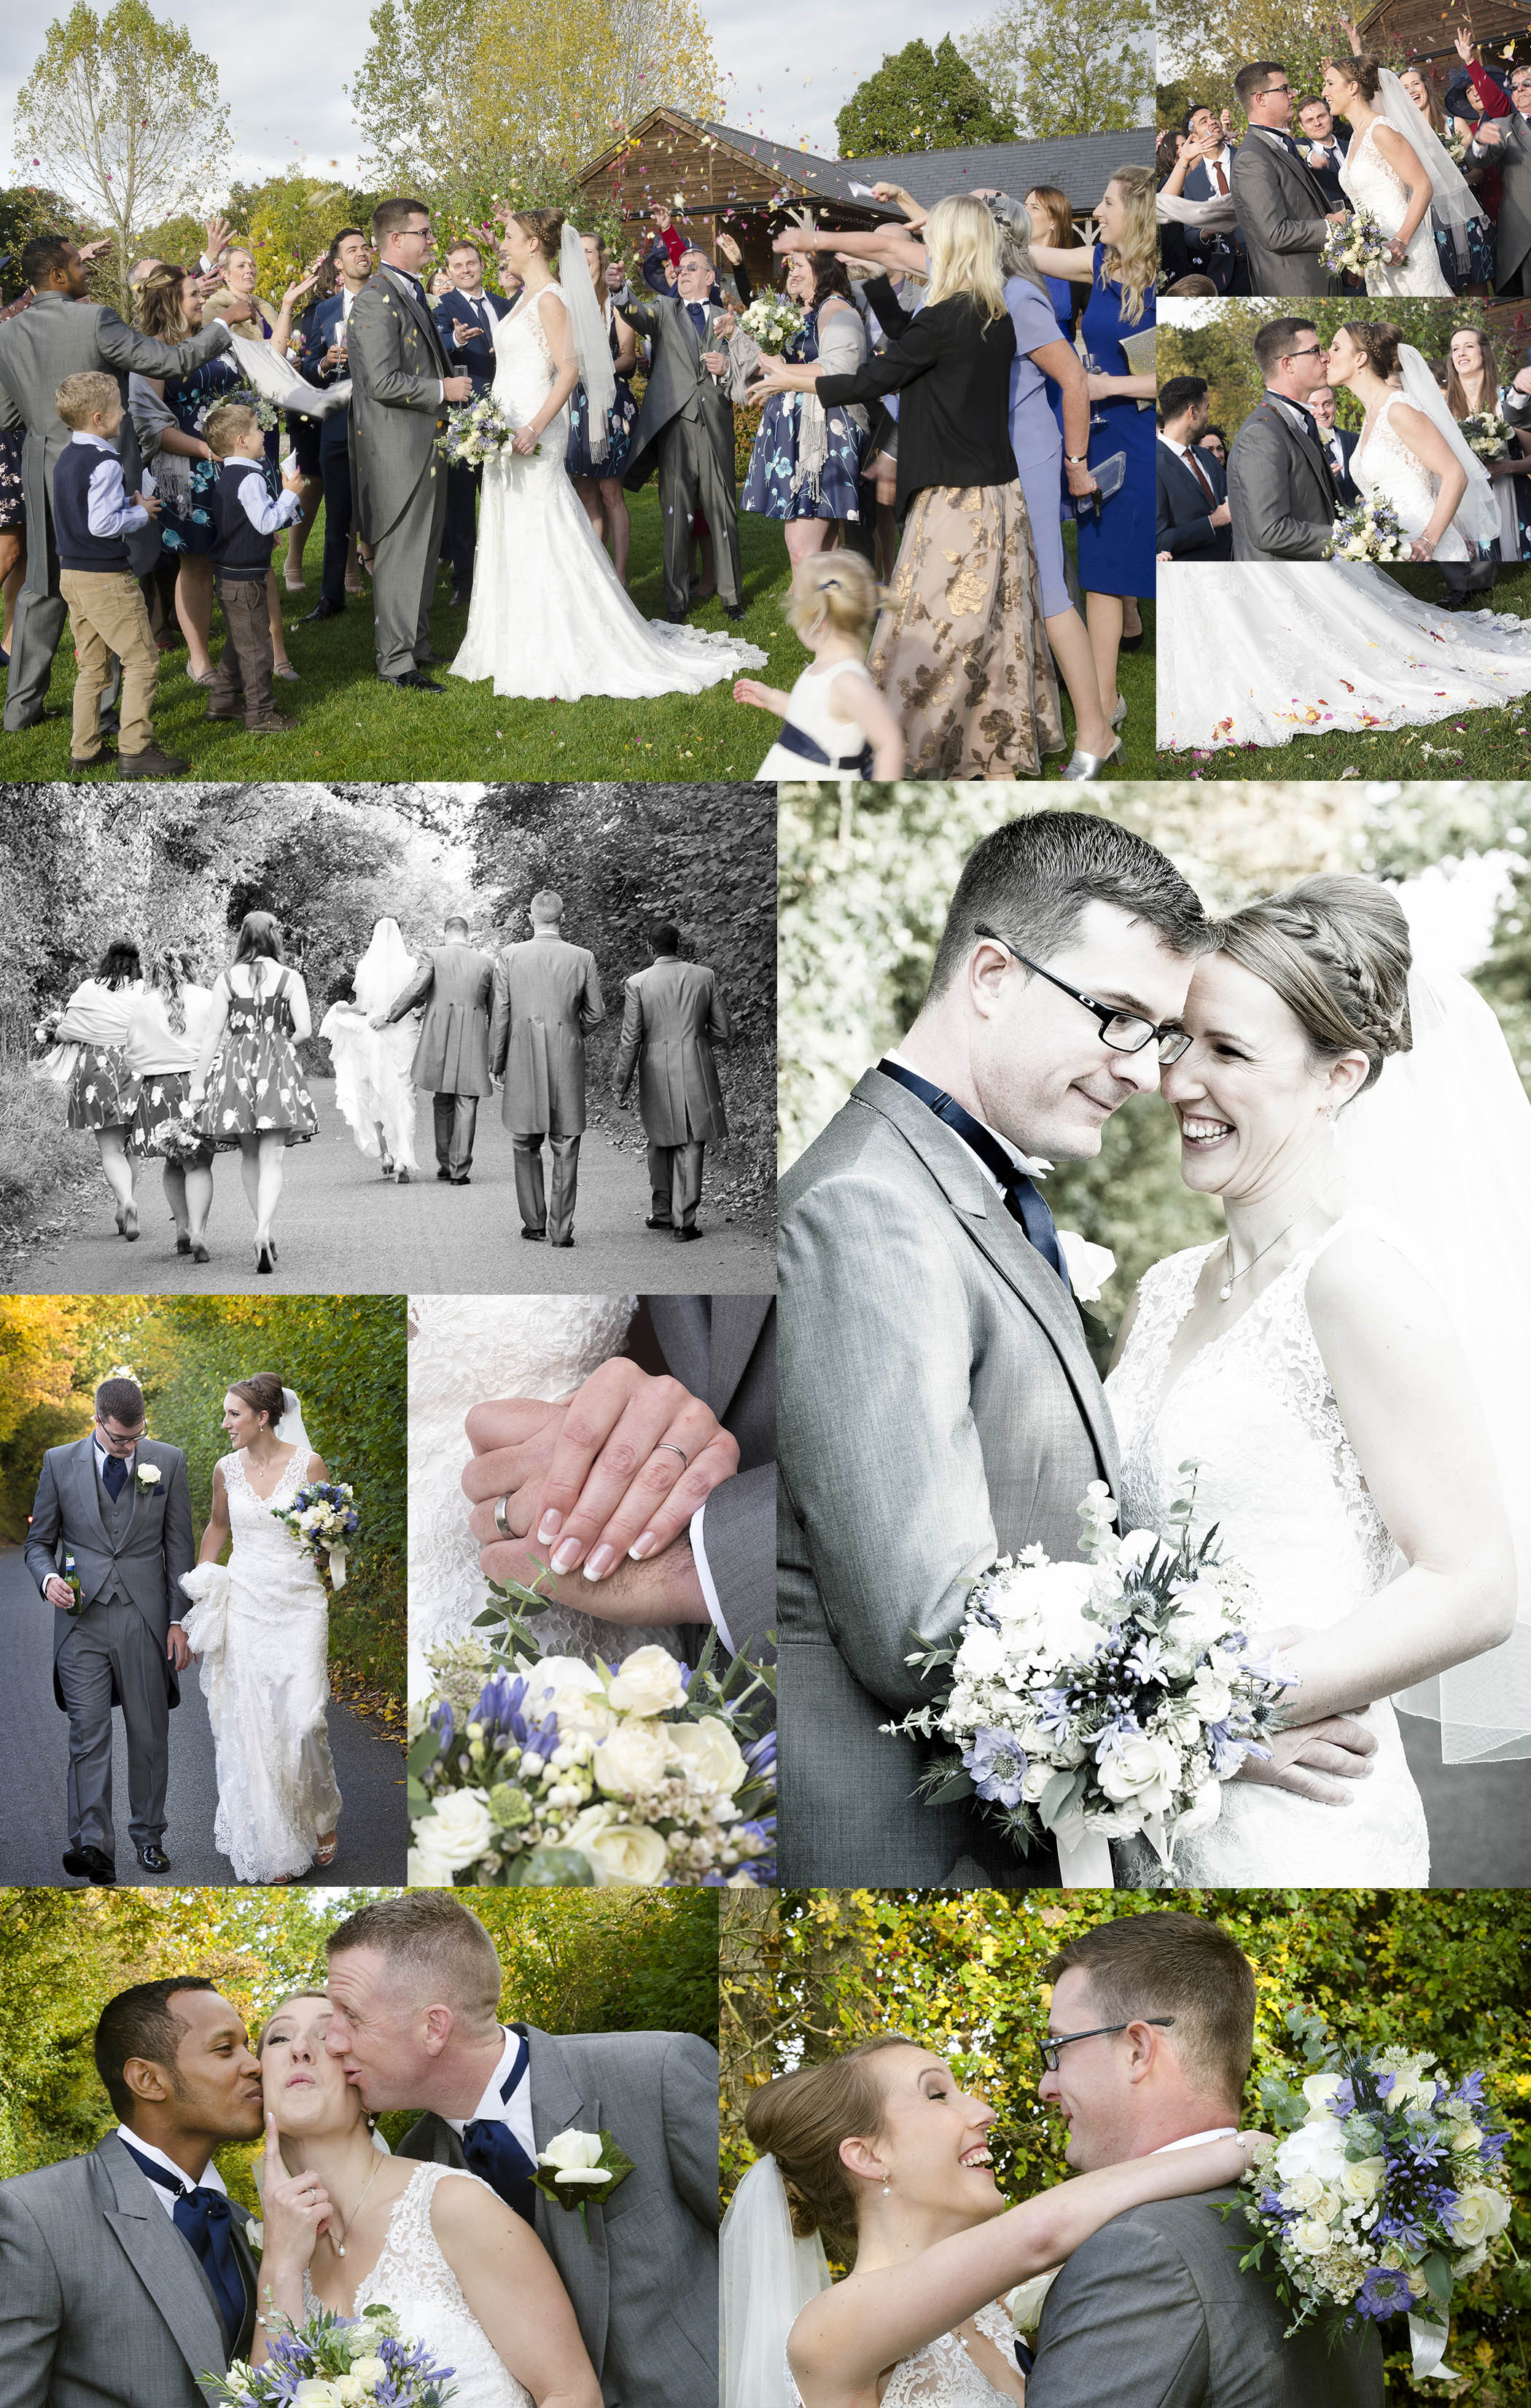 Wedding Photography at Manor Hill House, Professional photographer